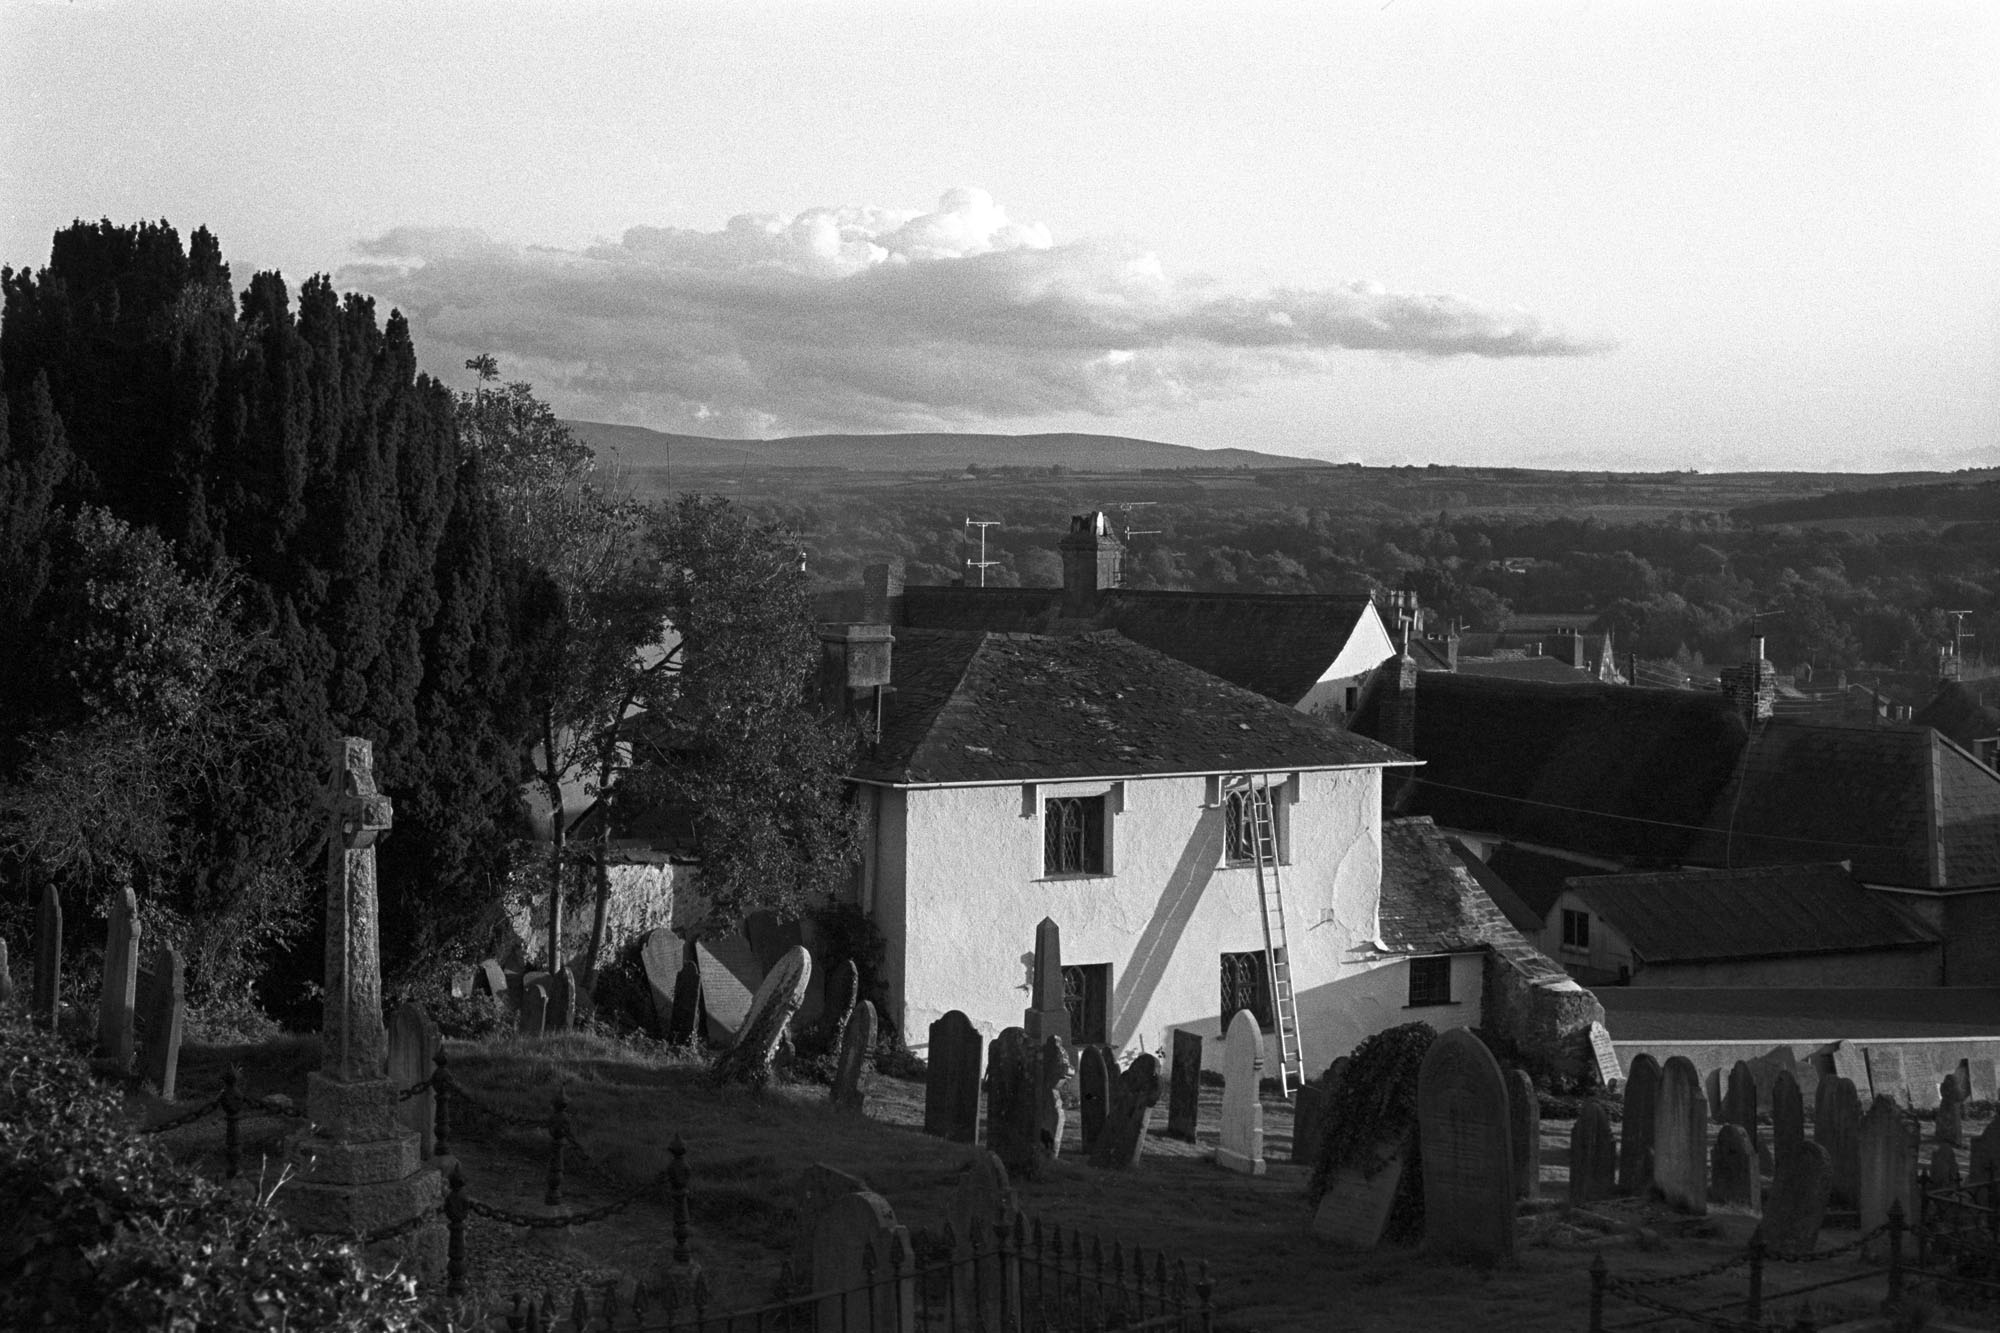 View towards Dartmoor from Hatherleigh churchyard by James Ravilious